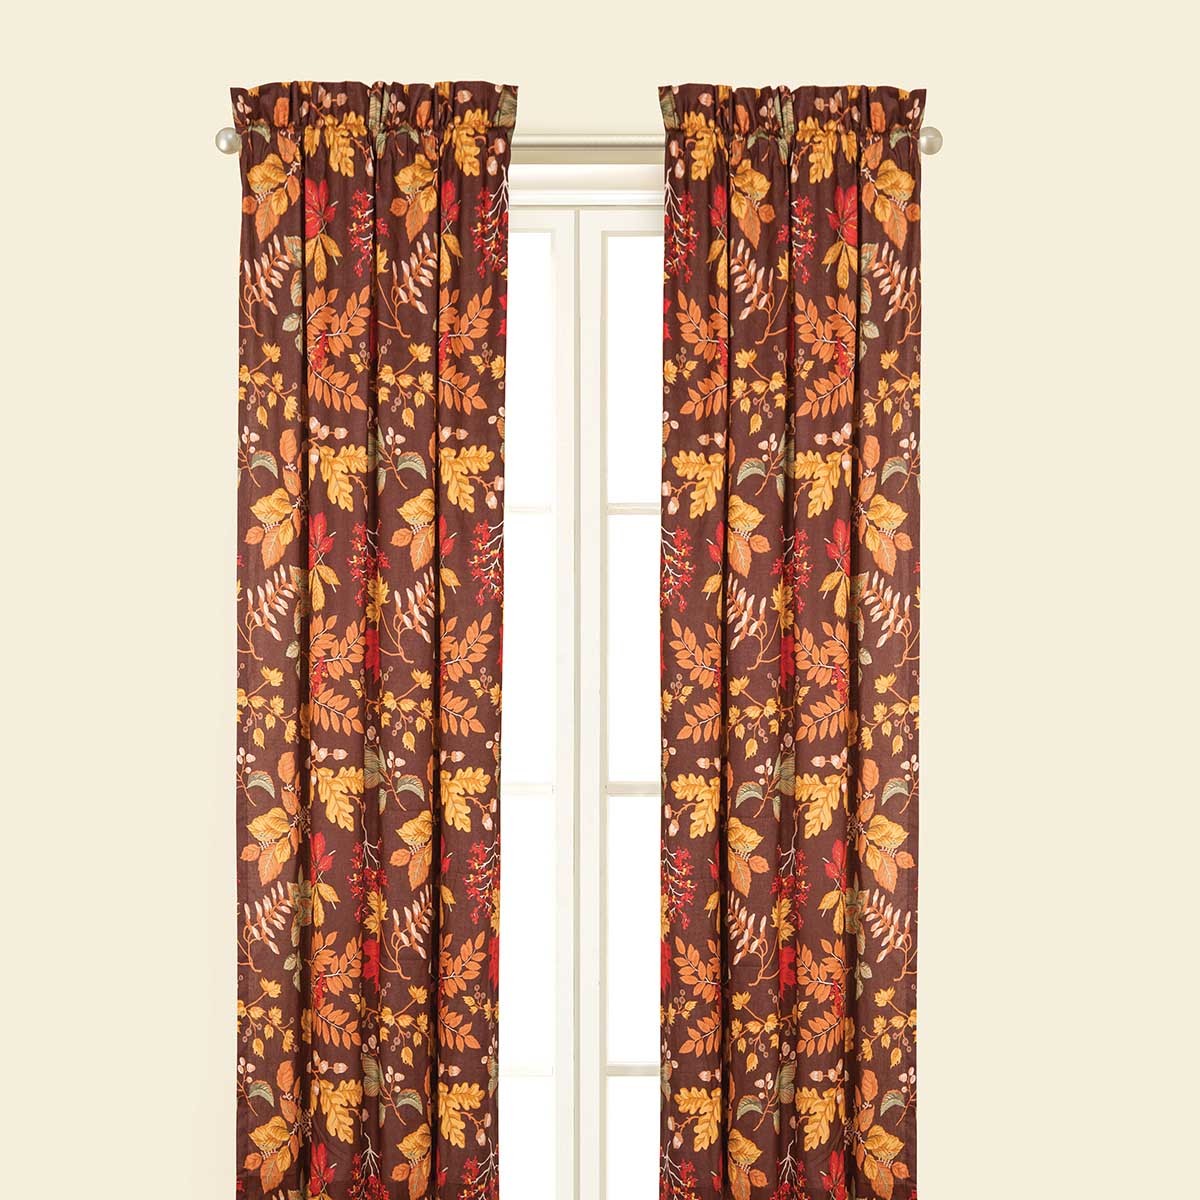 Lodge_Window_Drapery.jpg